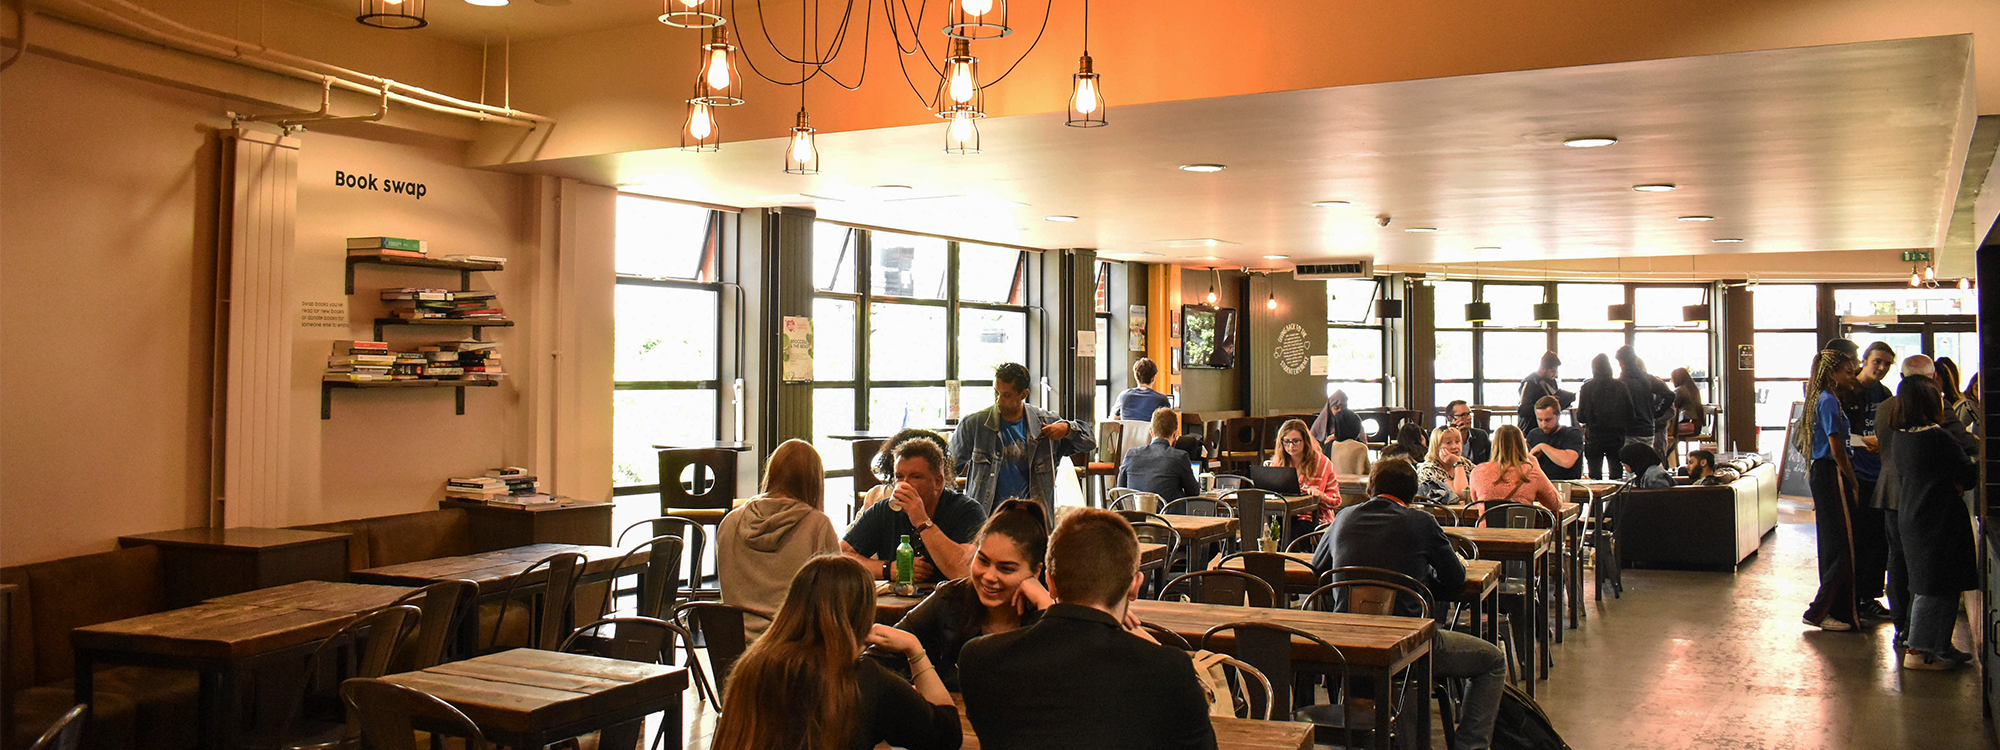 Relax in our on-campus café with a great range of food and drink from toasted paninis, sandwiches and sushi to our ethical Fairtrade coffee, refreshing smoothies and delicious treats